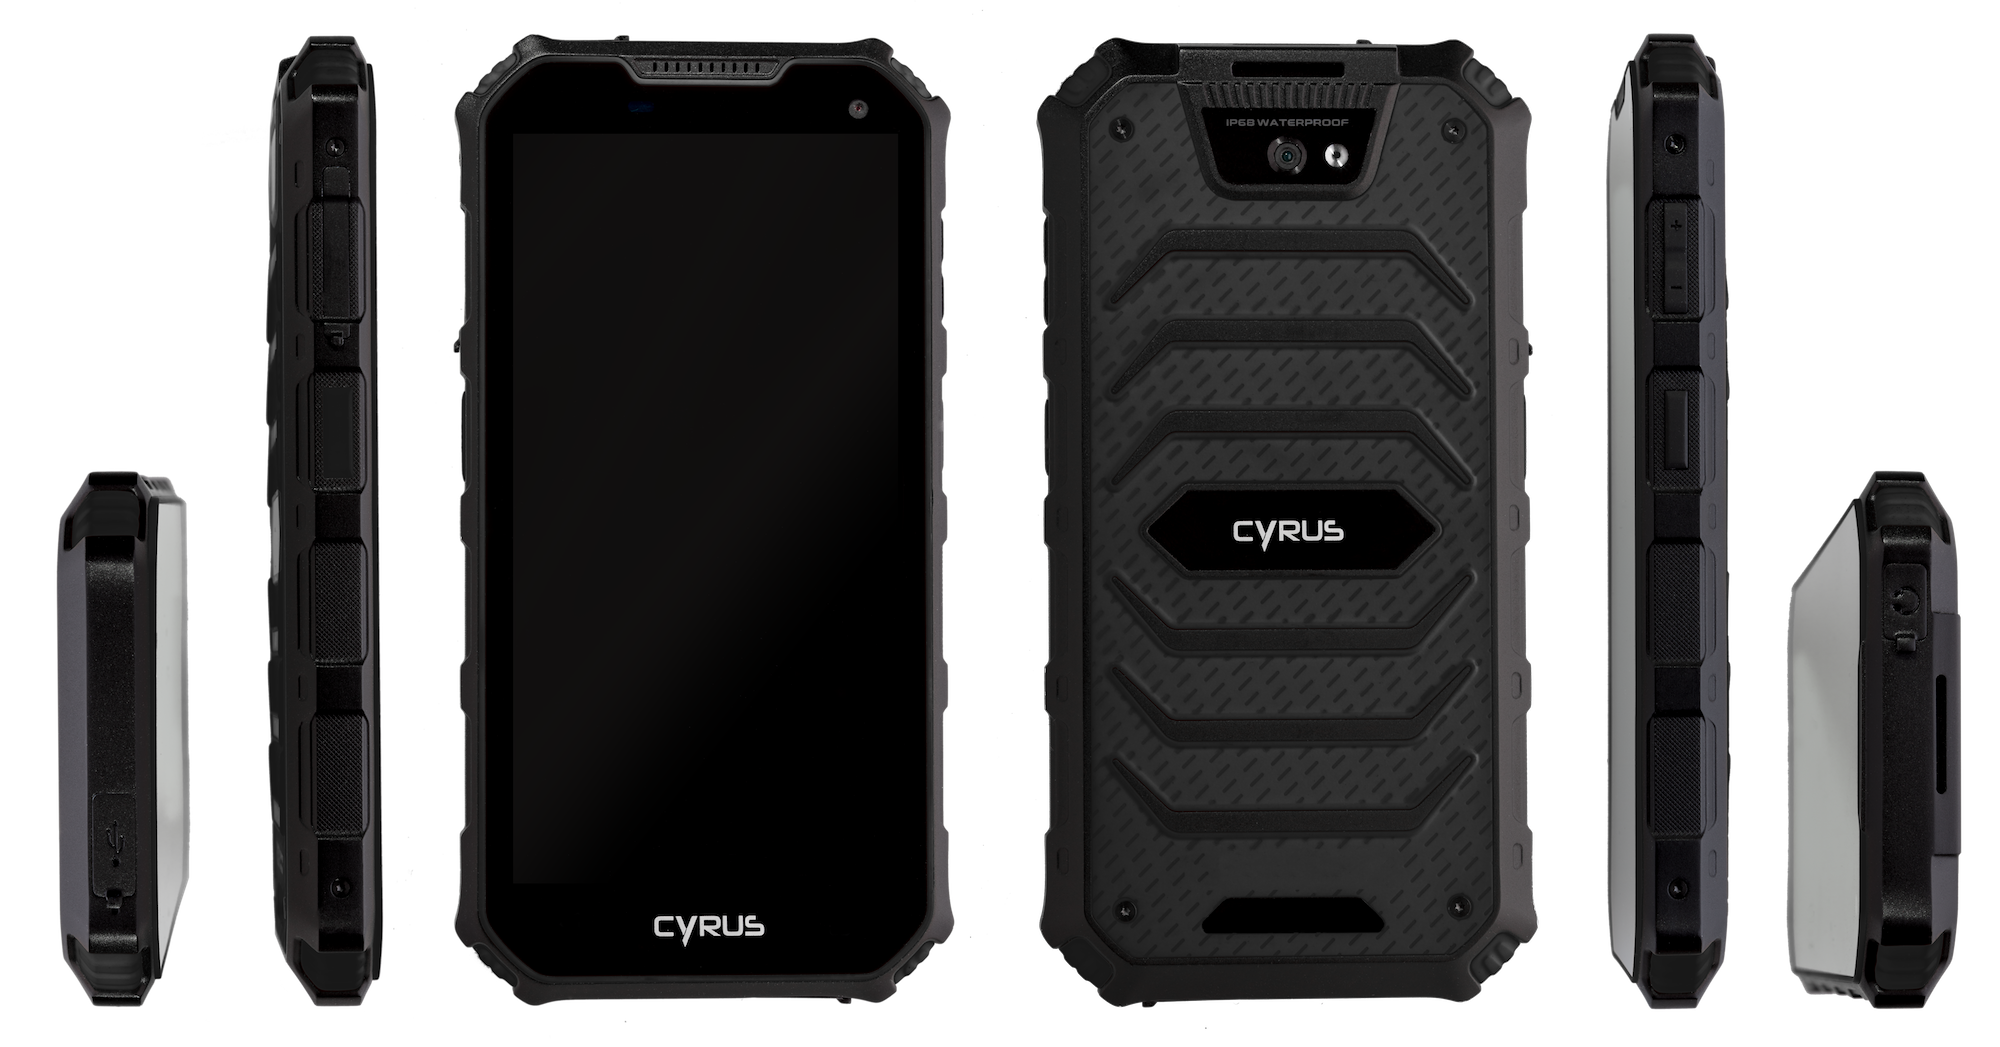 Cyrus Outdoor phone Handy CS24 mobile phone tracker app jaegermagazin